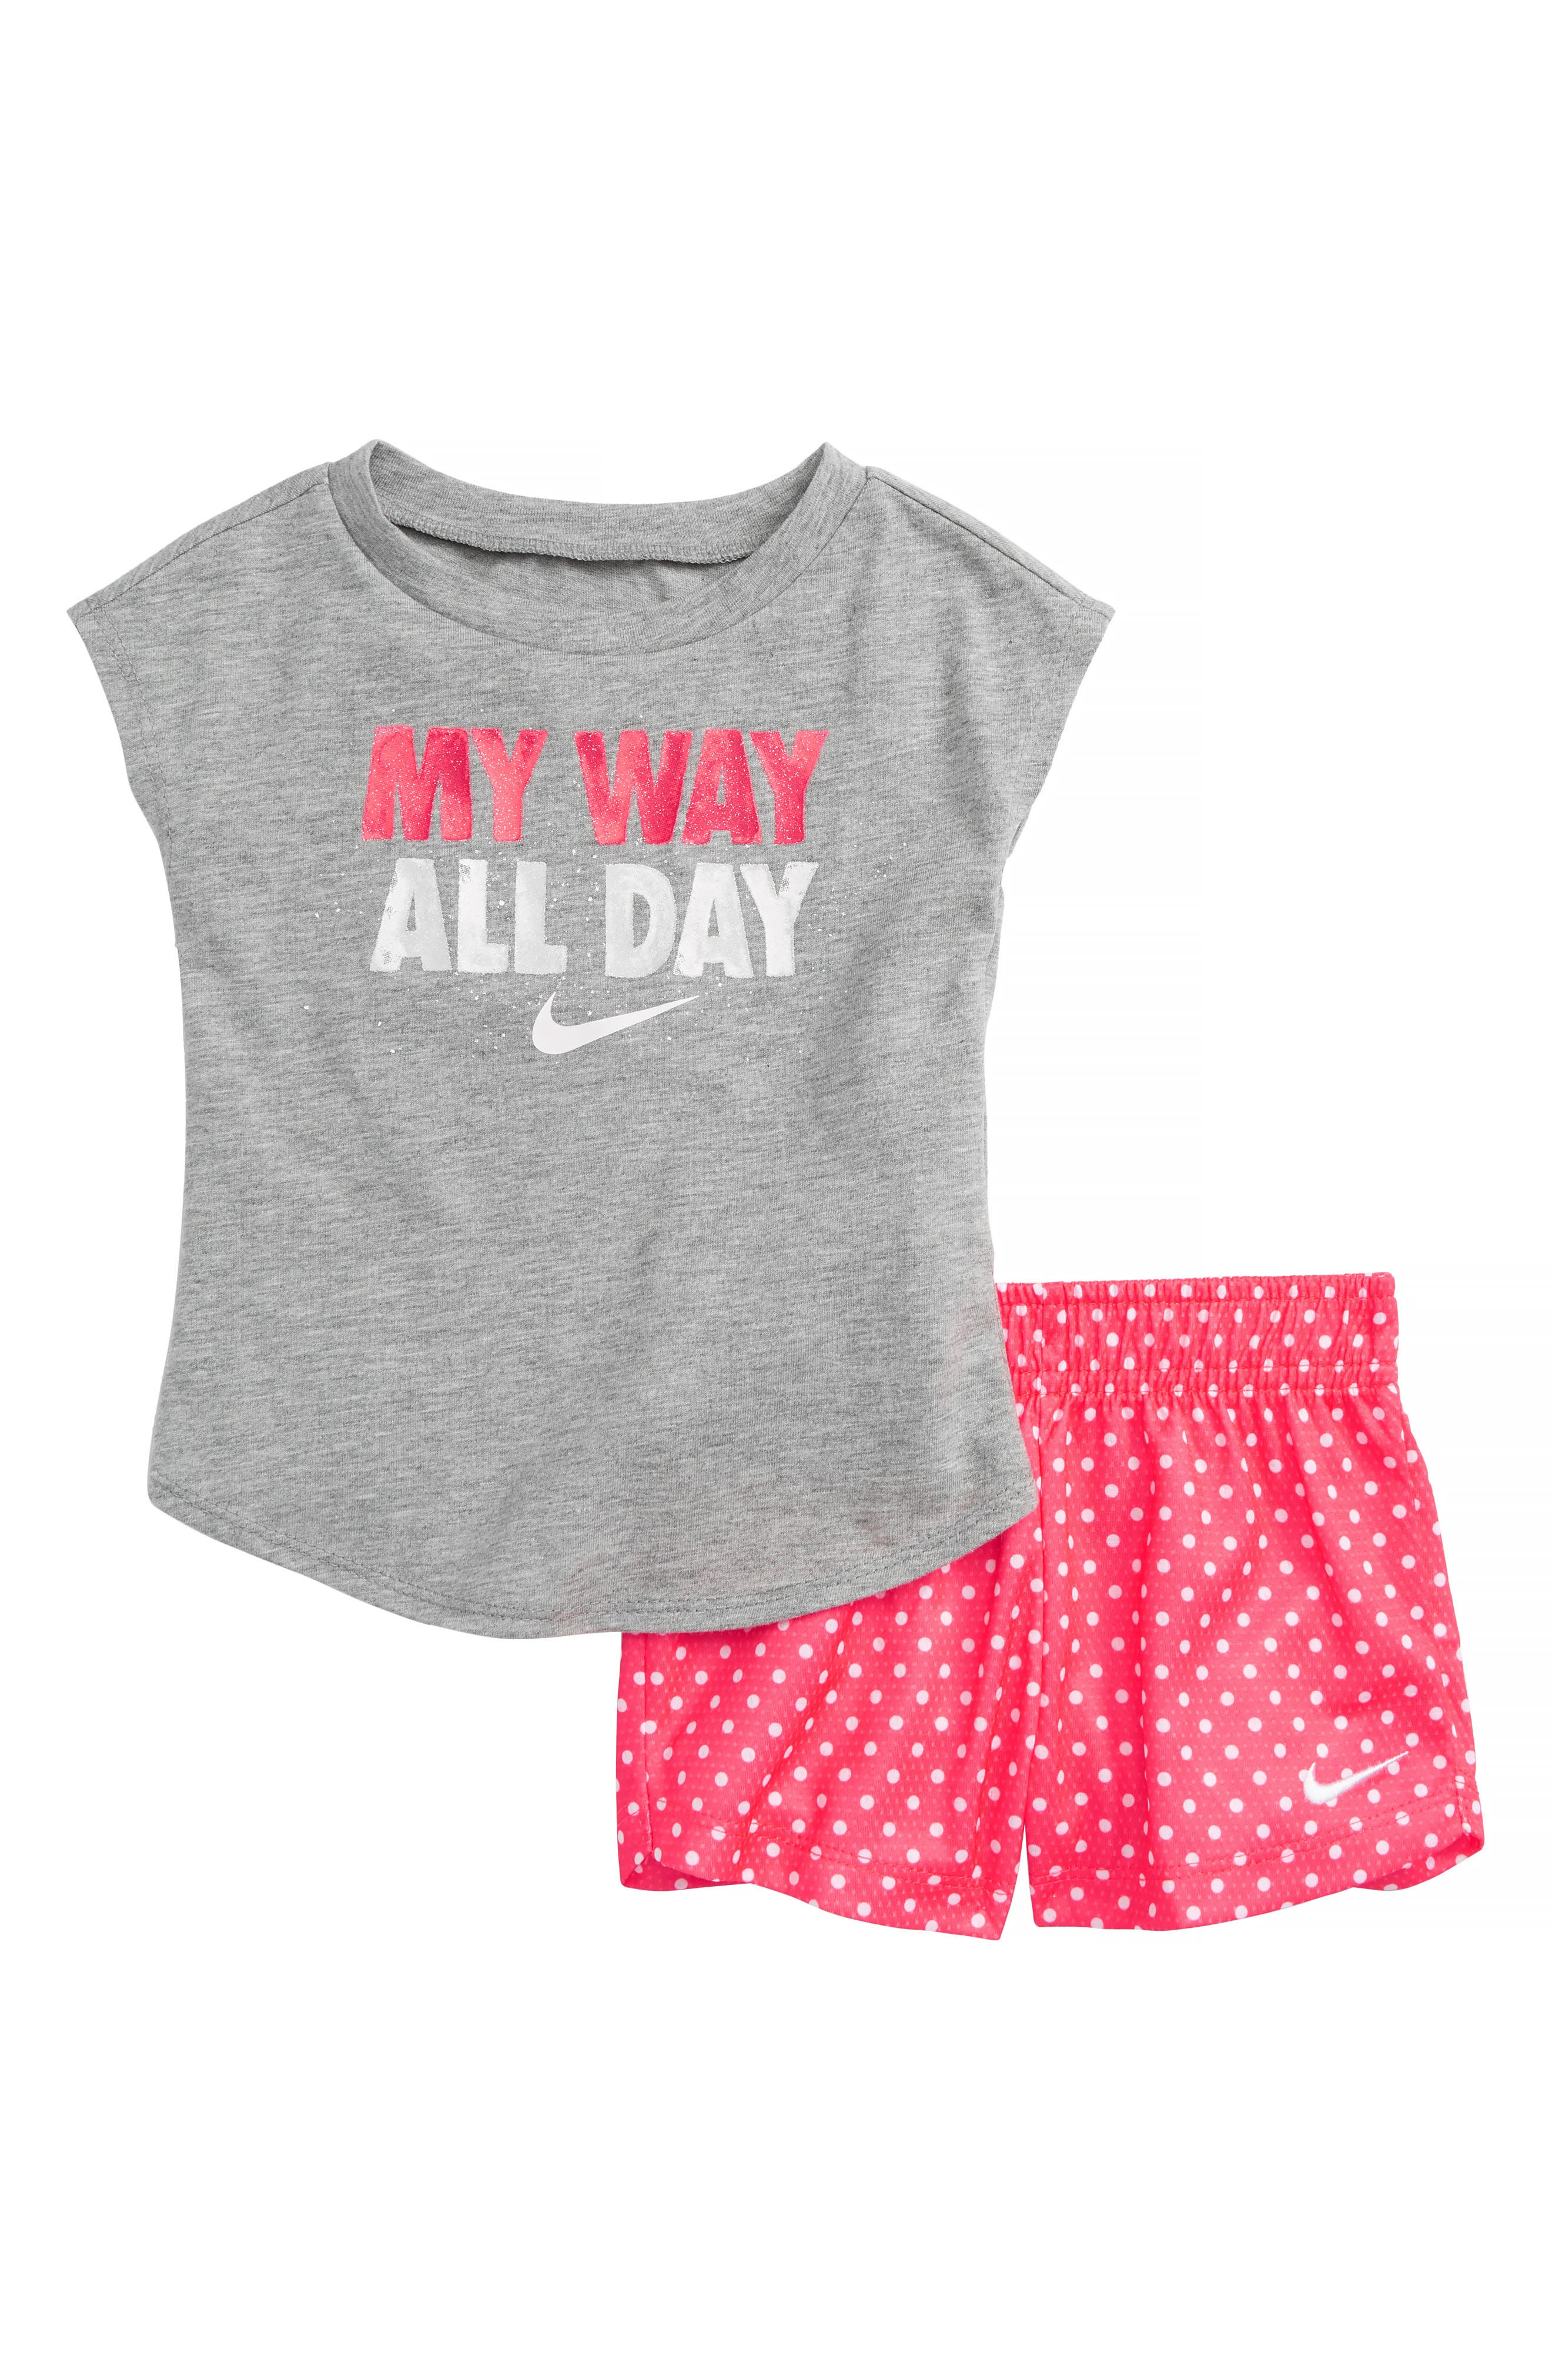 My Way All Day Graphic Tee & Shorts Set,                         Main,                         color, Racer Pink